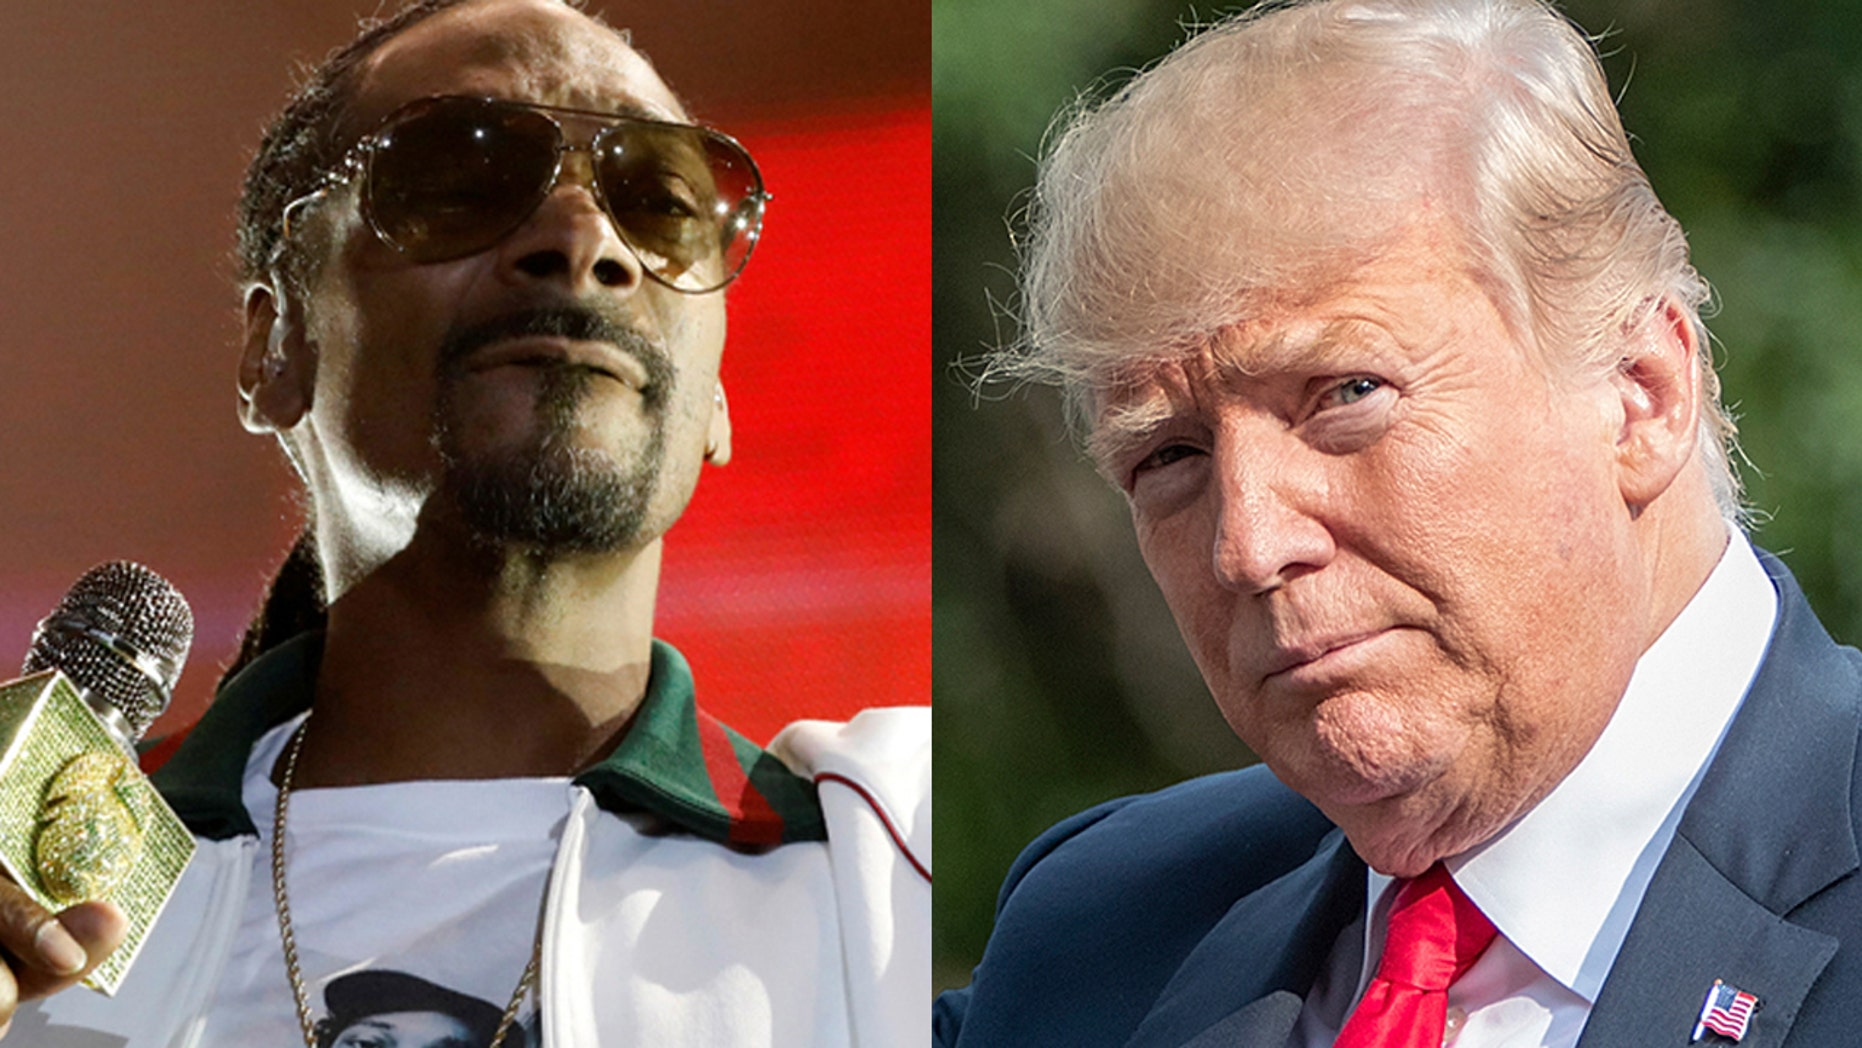 Snoop Dogg called out President Trump's supporters, including rapper Kanye West, for their support.